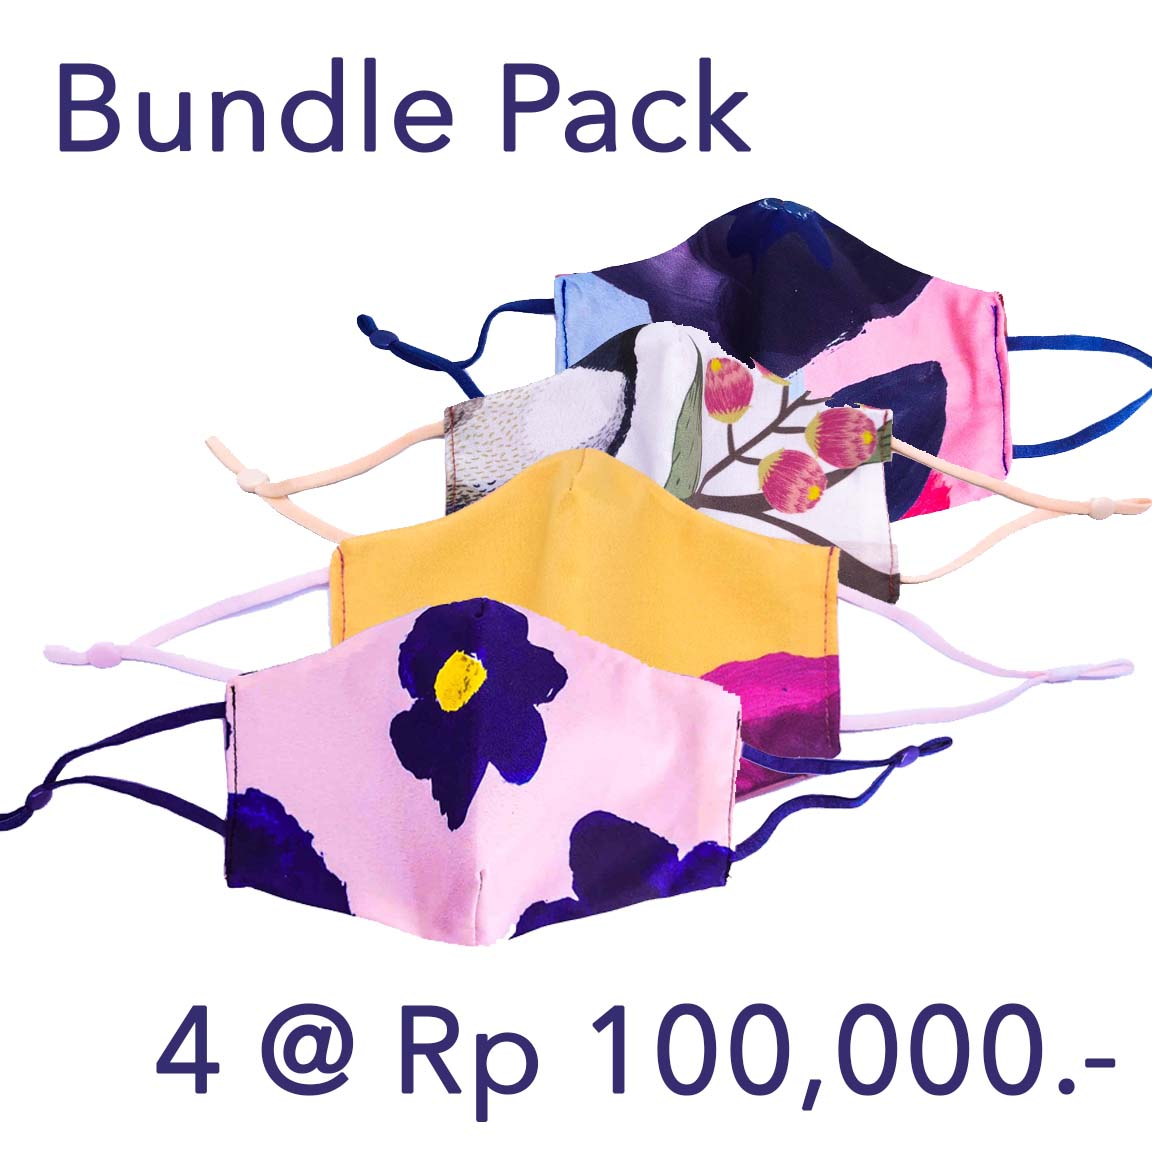 Bundle Pack: 4 pcs of 2-Ply Anti-Bacterial Face Mask with Adjustable Ear Loops & Filter Pockets